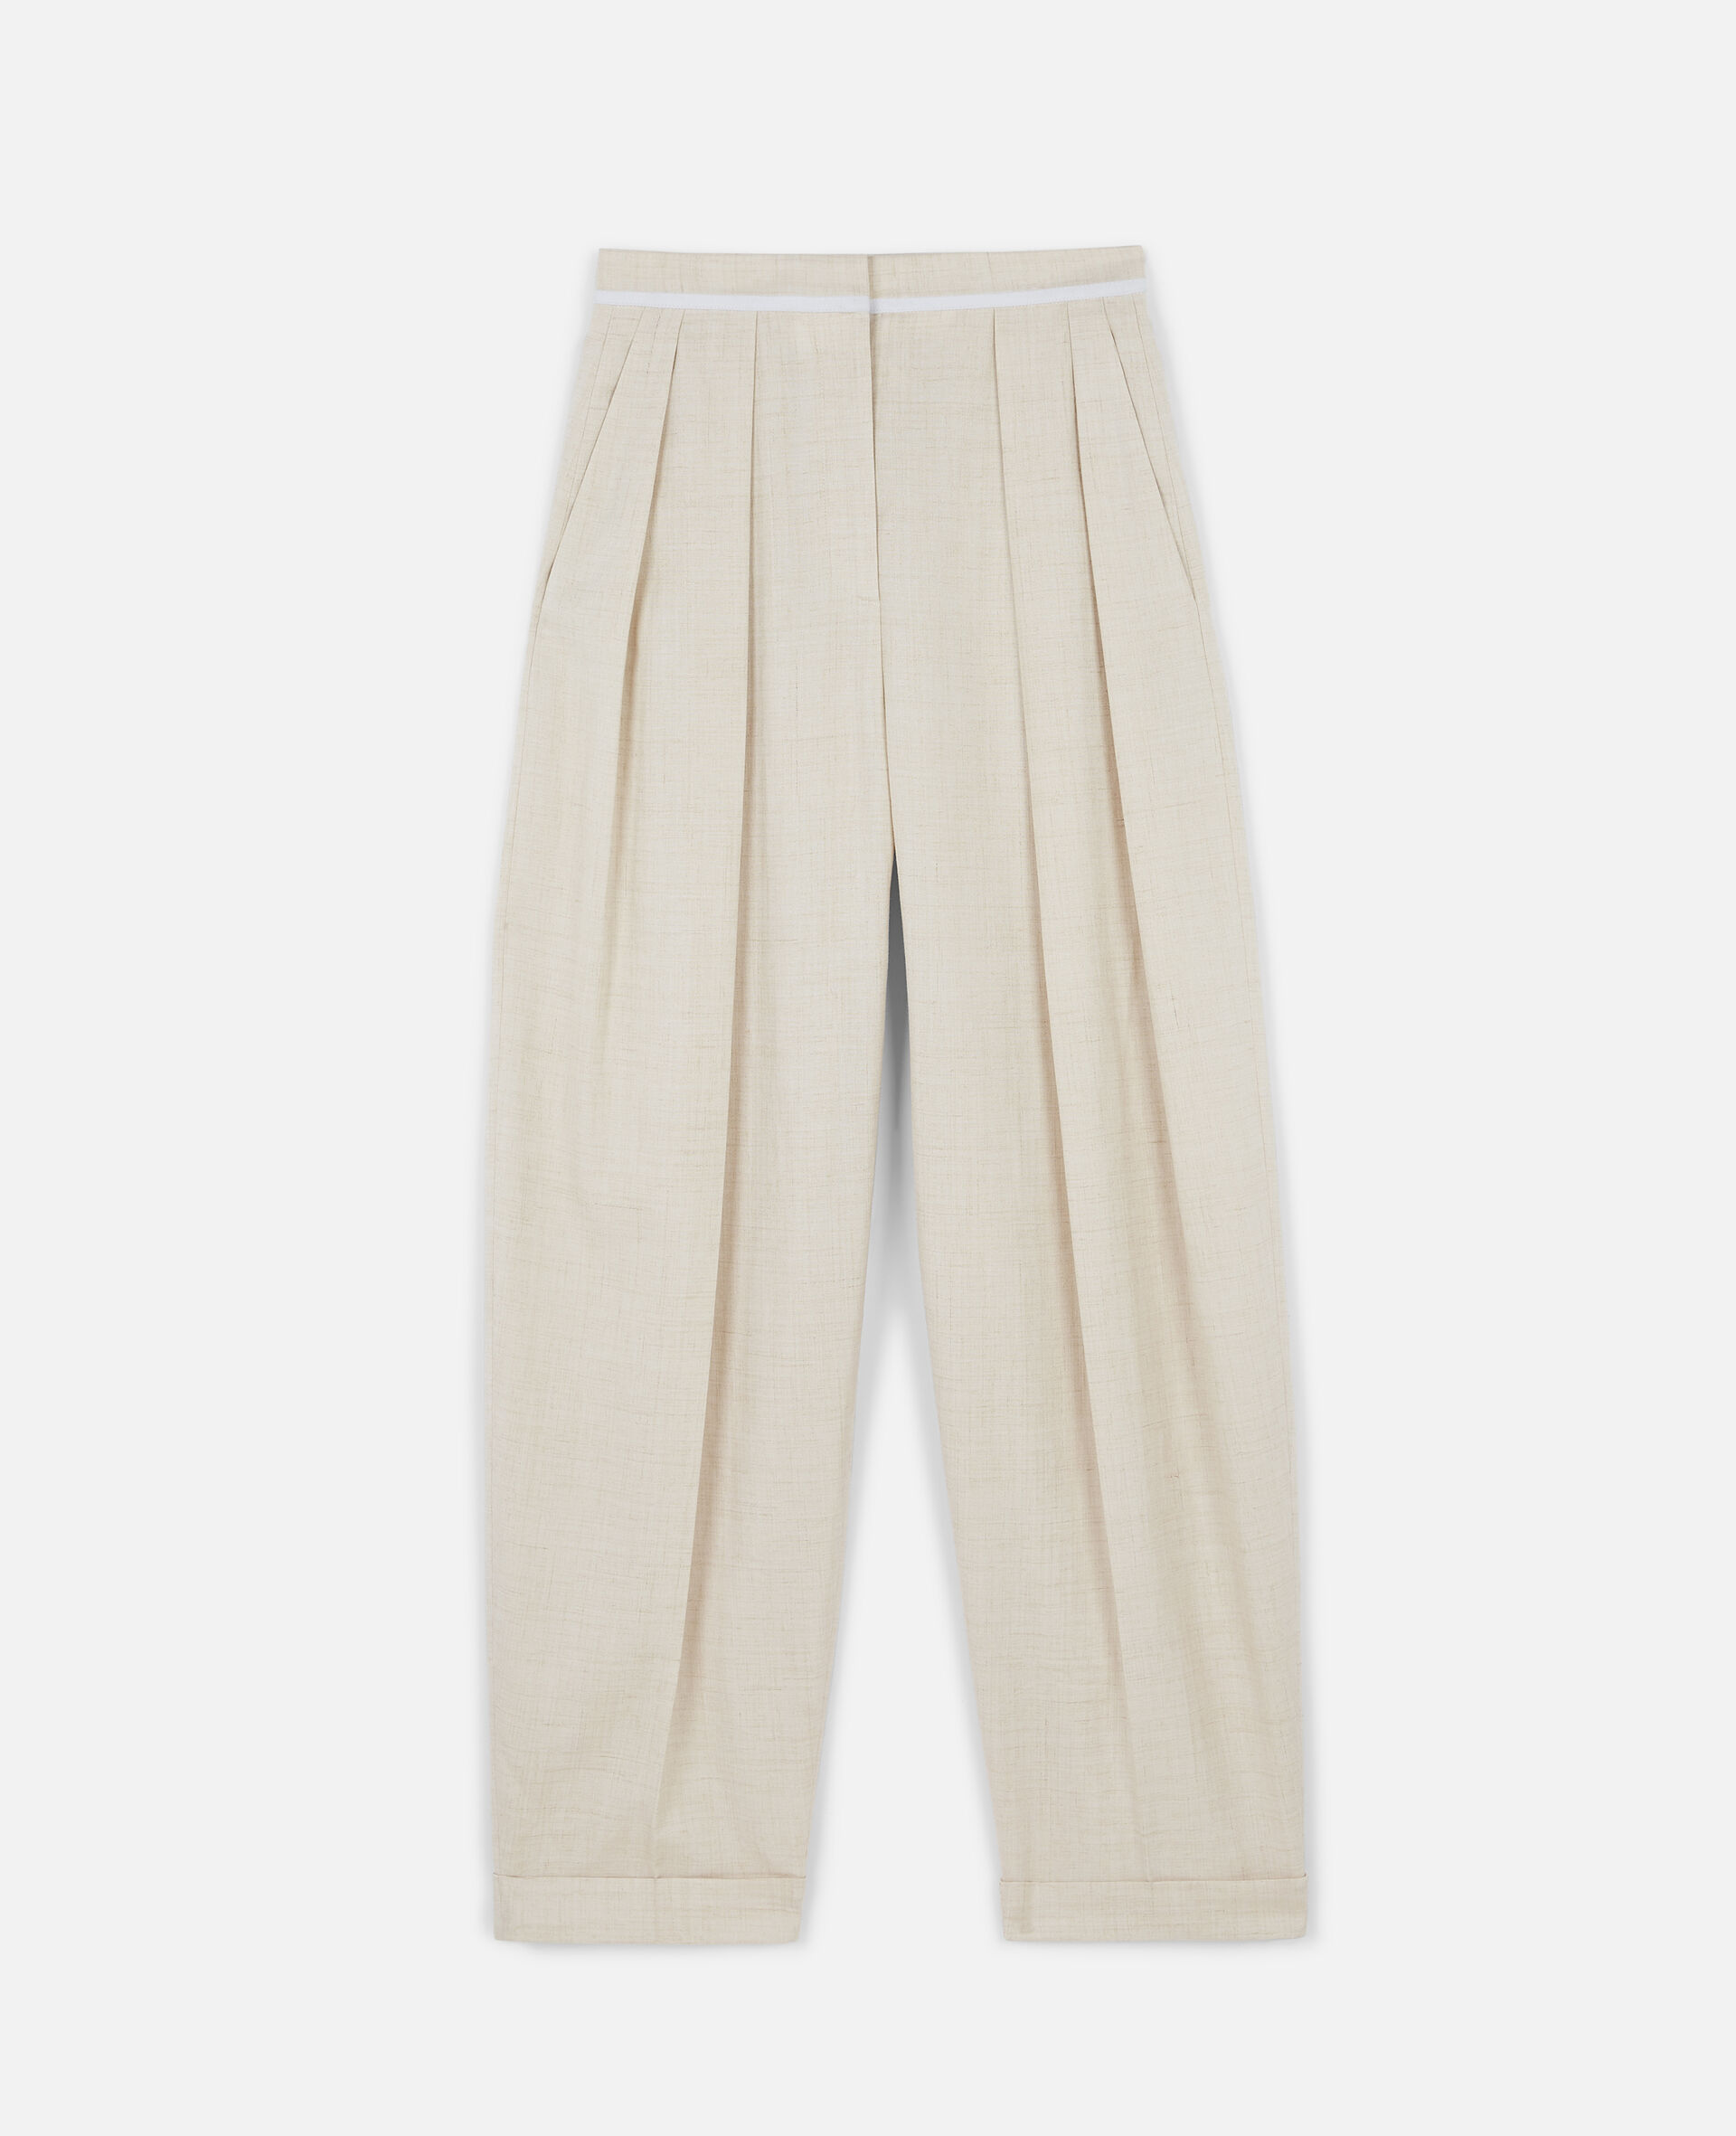 Couture-Hose Ariana-Beige-large image number 0